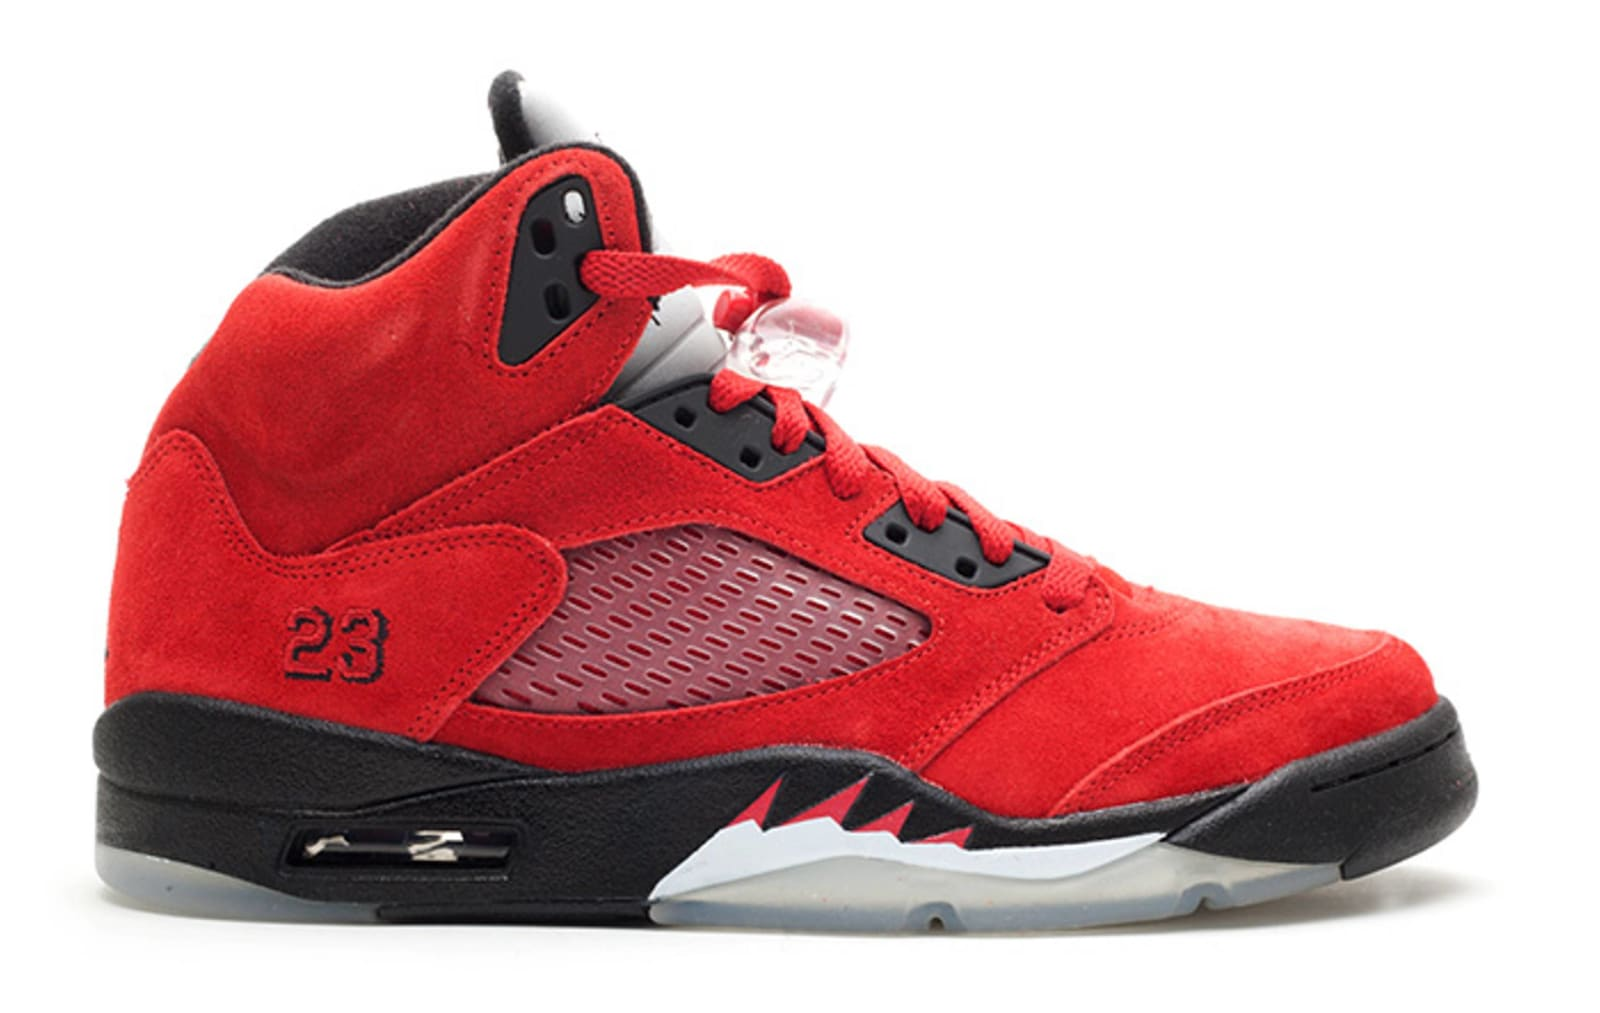 Air Jordan 5 Raging Bulls Featured Image